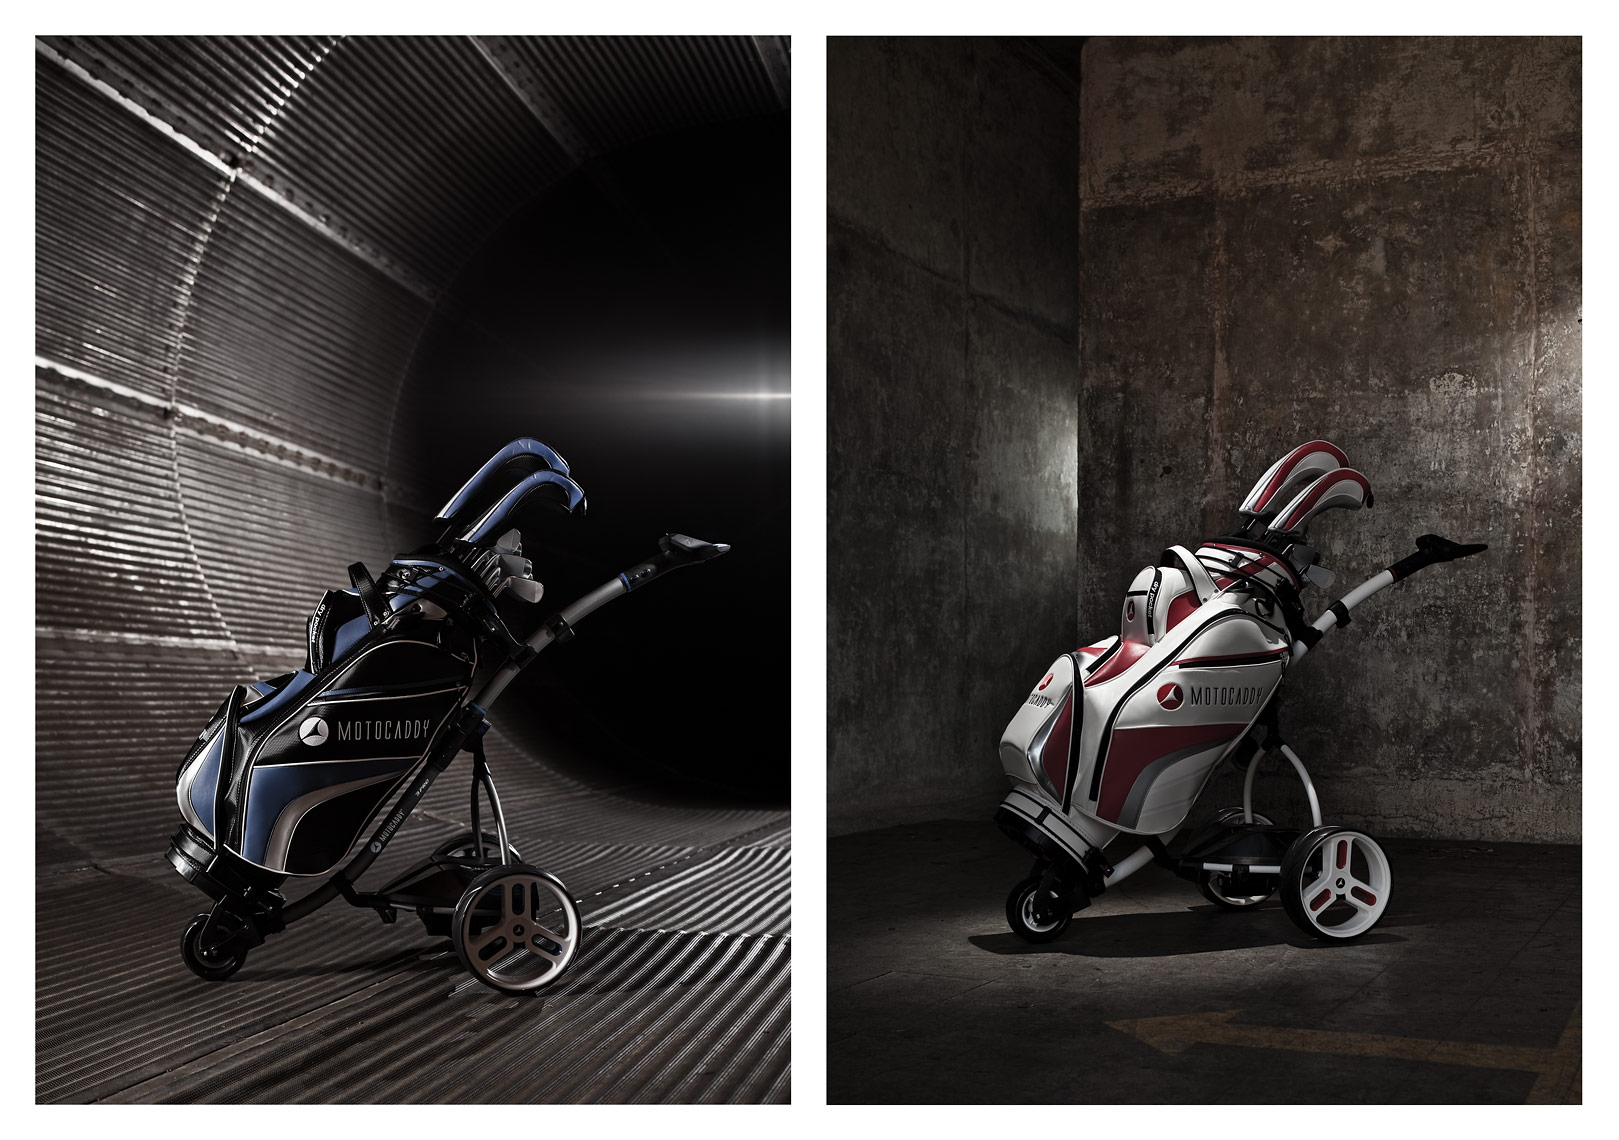 Motocaddy, print advertising, Full Page